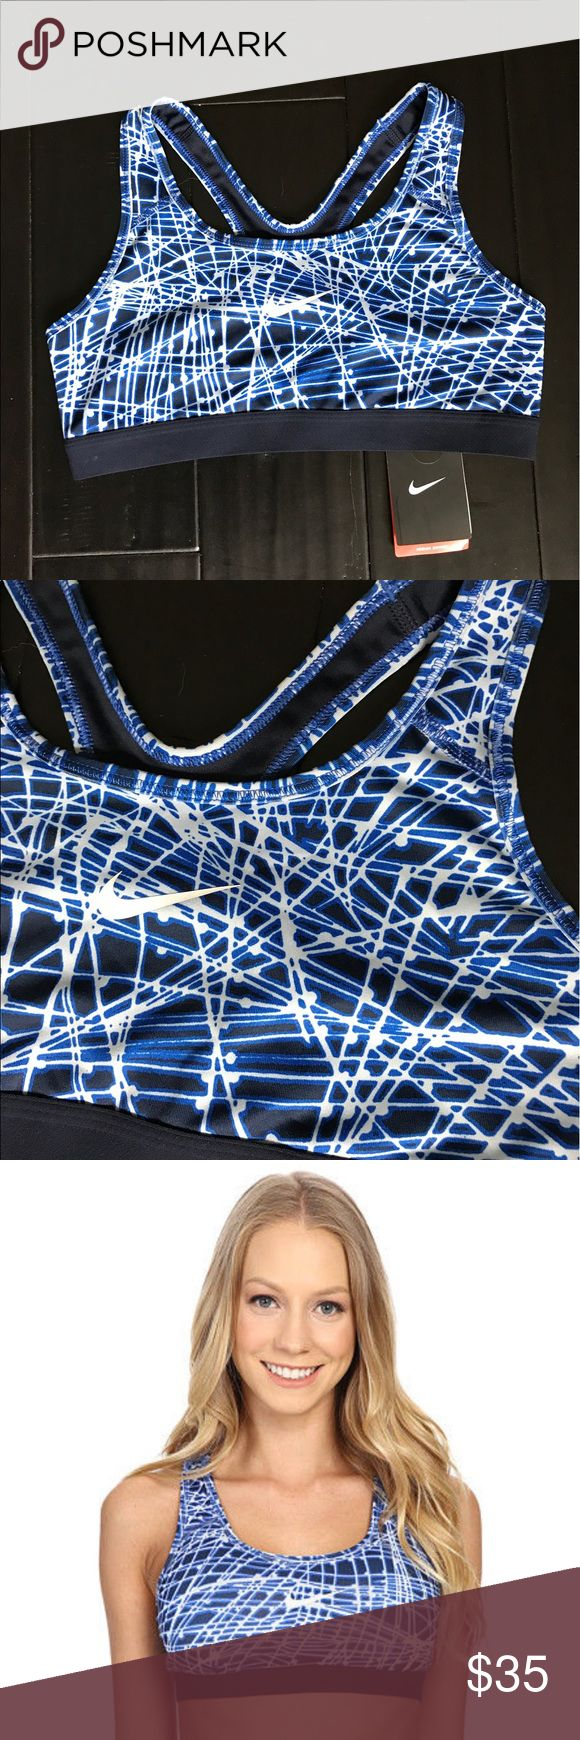 Nike Pro Classic Tracer Sports Bra Turn up the heat on an otherwise everyday workout with the intense Pro Classic Tracer Sports Bra. Designed for medium-impact sports like cycling, dance, and cardio classes. Compression fit keeps everything tight to the body for maximum support during high-performance activity. Dri-FIT™ high-performance fabric wicks perspiration away from the body and towards the surface where it can evaporate. Nike Intimates & Sleepwear Bras